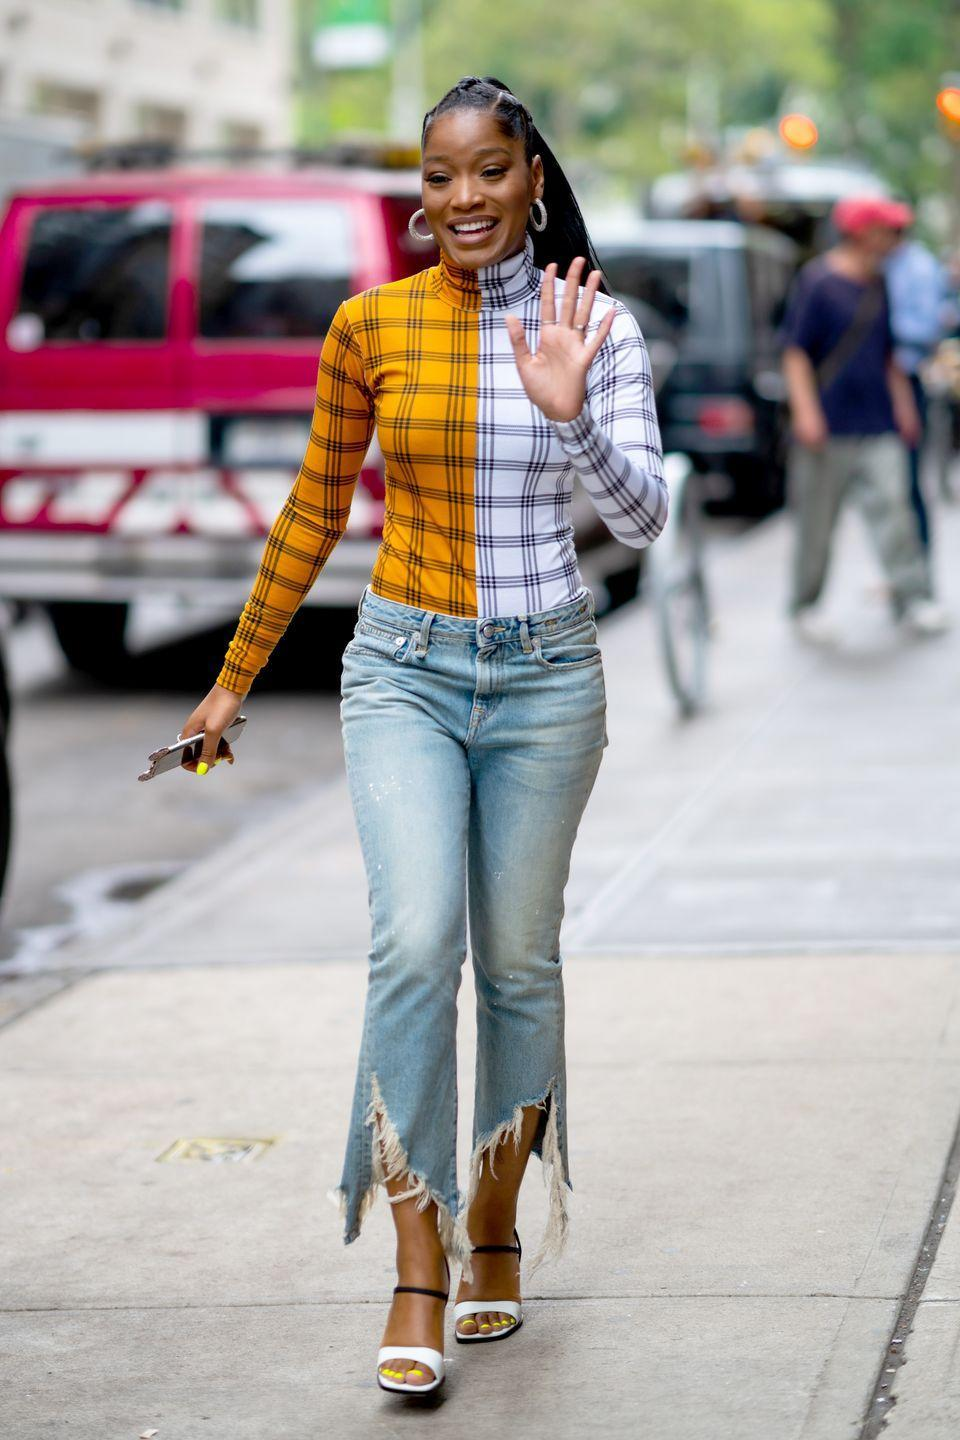 <p>This split look is HOT for fall 2021. With a statement-making top like this, you can go very laid-back with the rest of your look – like jeans and sneakers. </p>